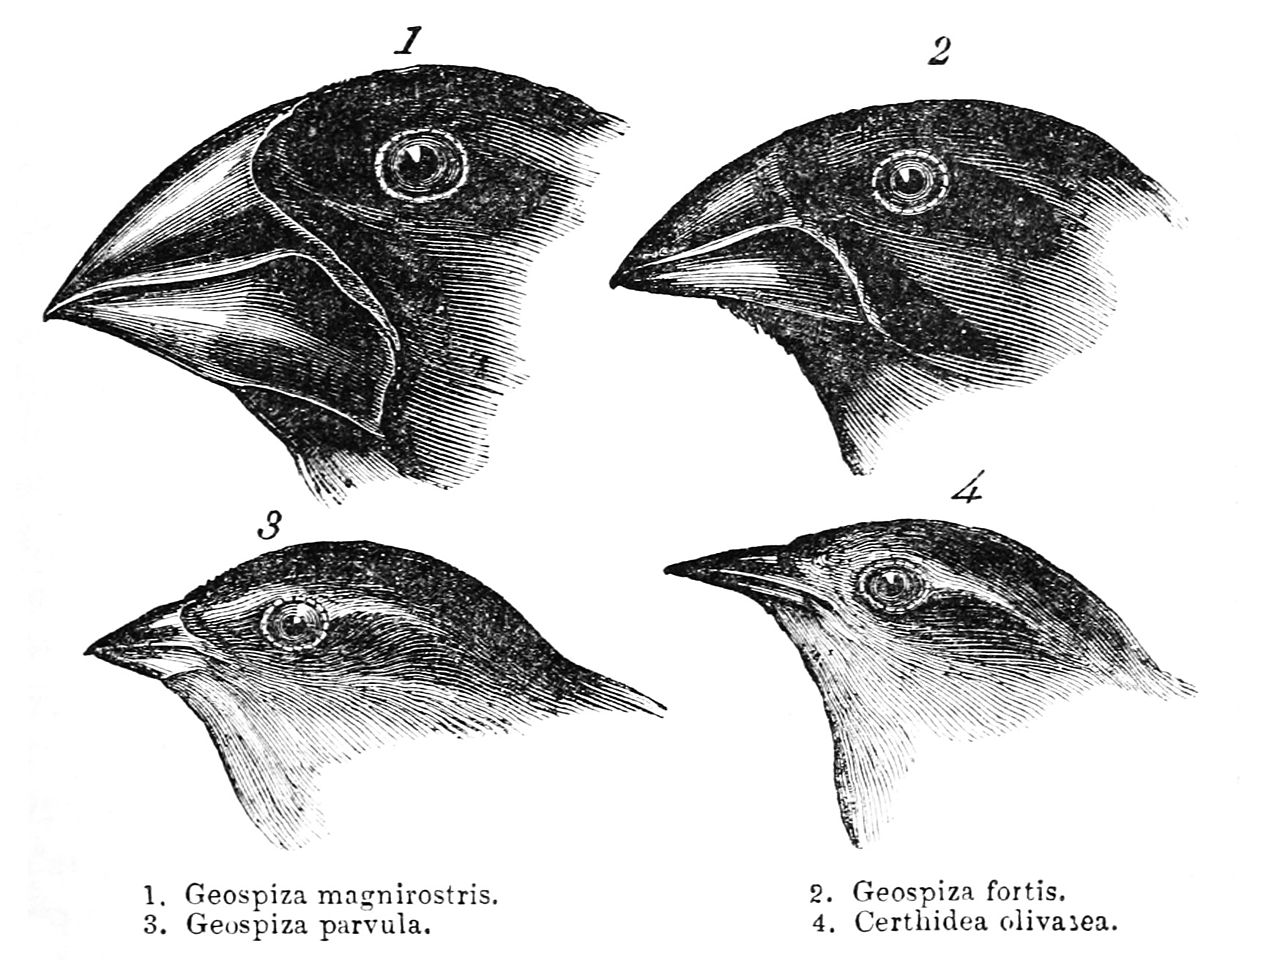 Darwins Finches Evolution Speciation